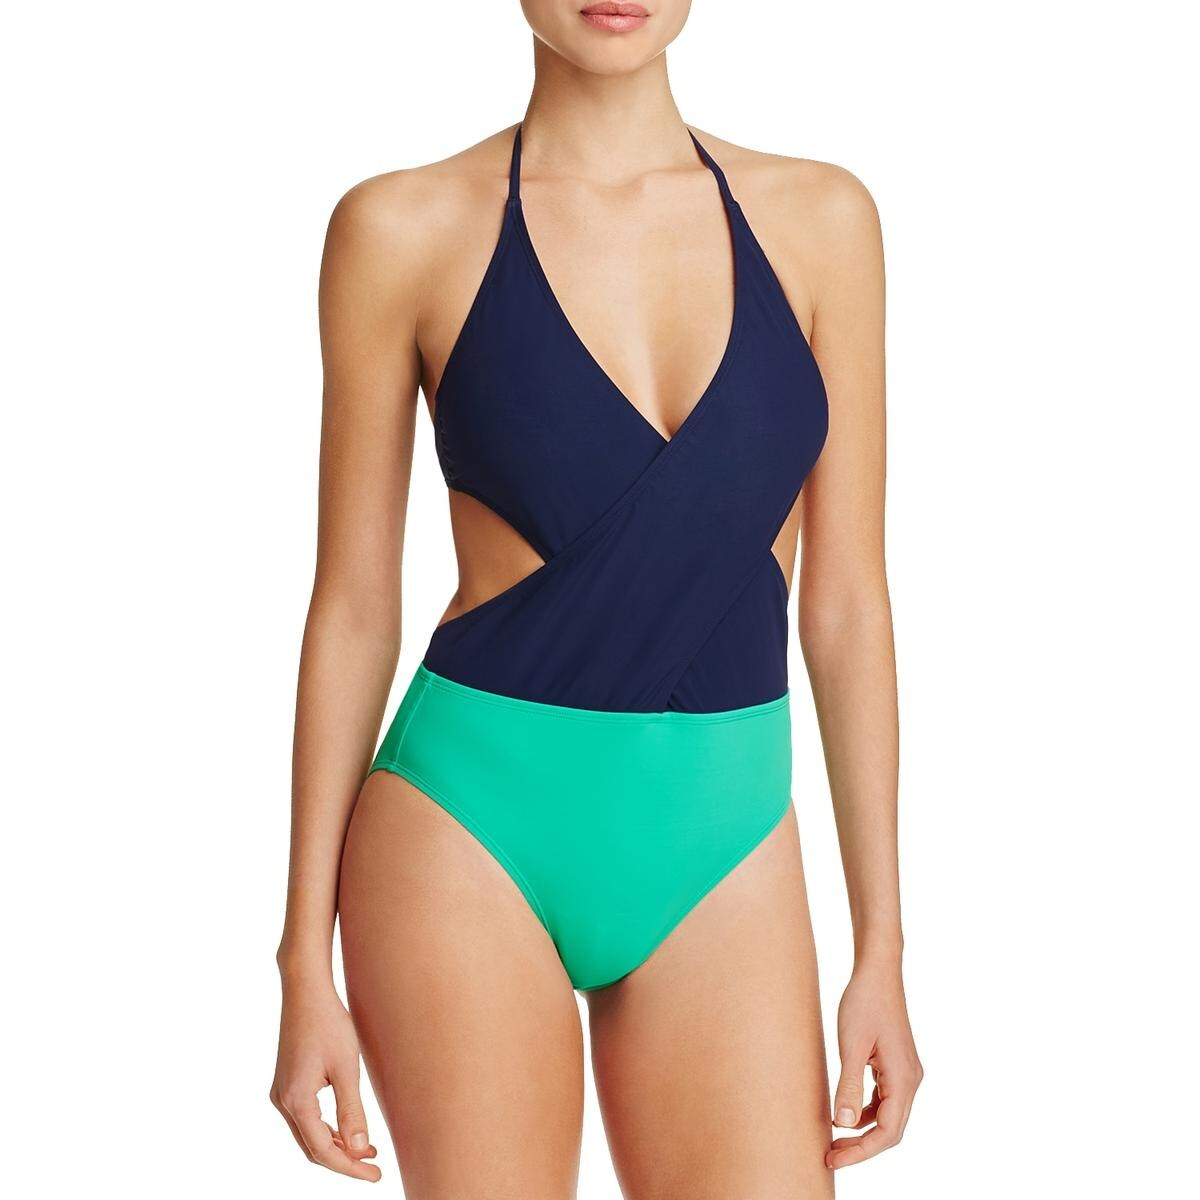 cf57abb738df1 Shop Tory Burch Womens Colorblock Halter One-Piece Swimsuit - Free Shipping  Today - Overstock - 23881909